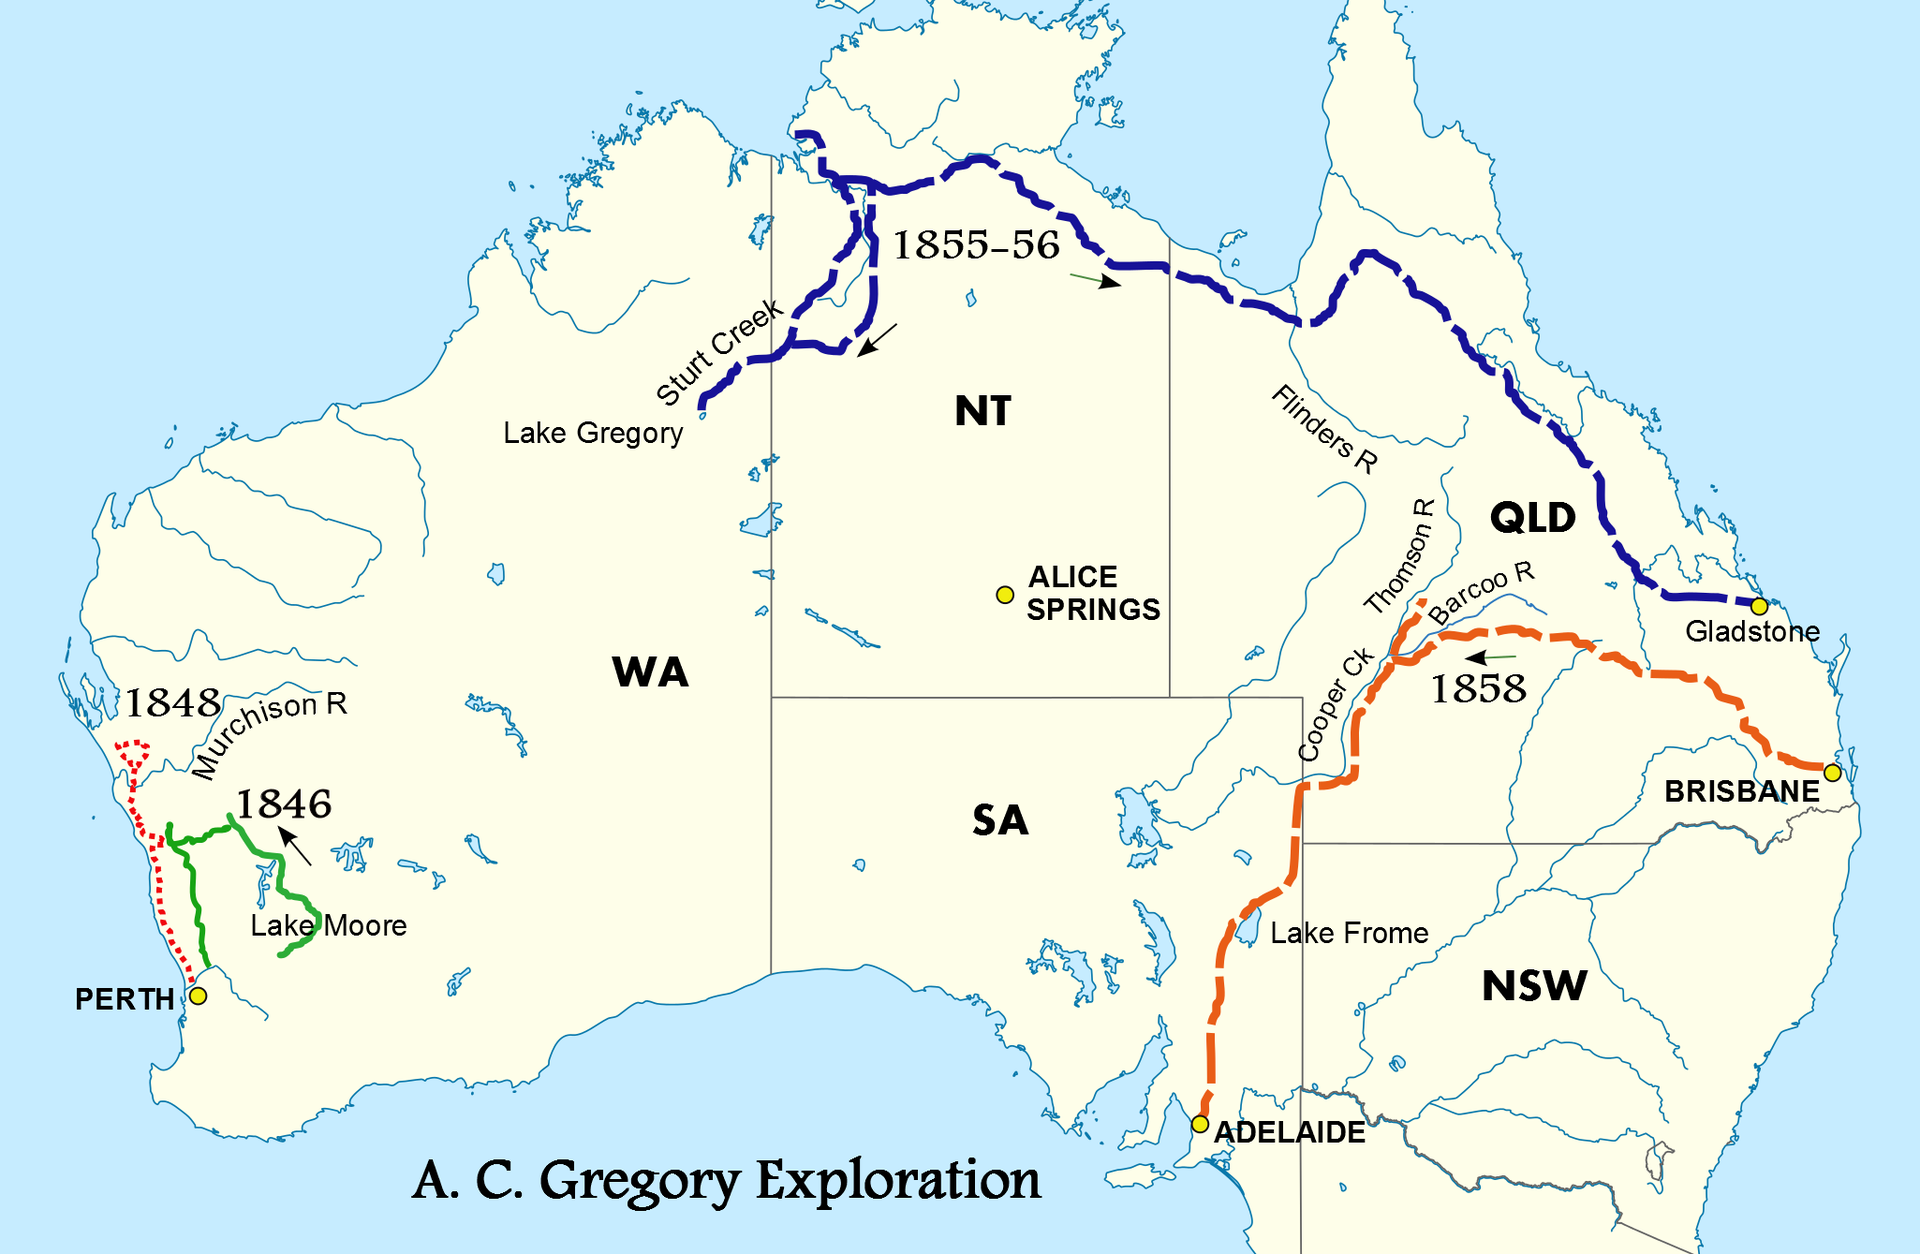 ac_gregory_map_of_exploration.png